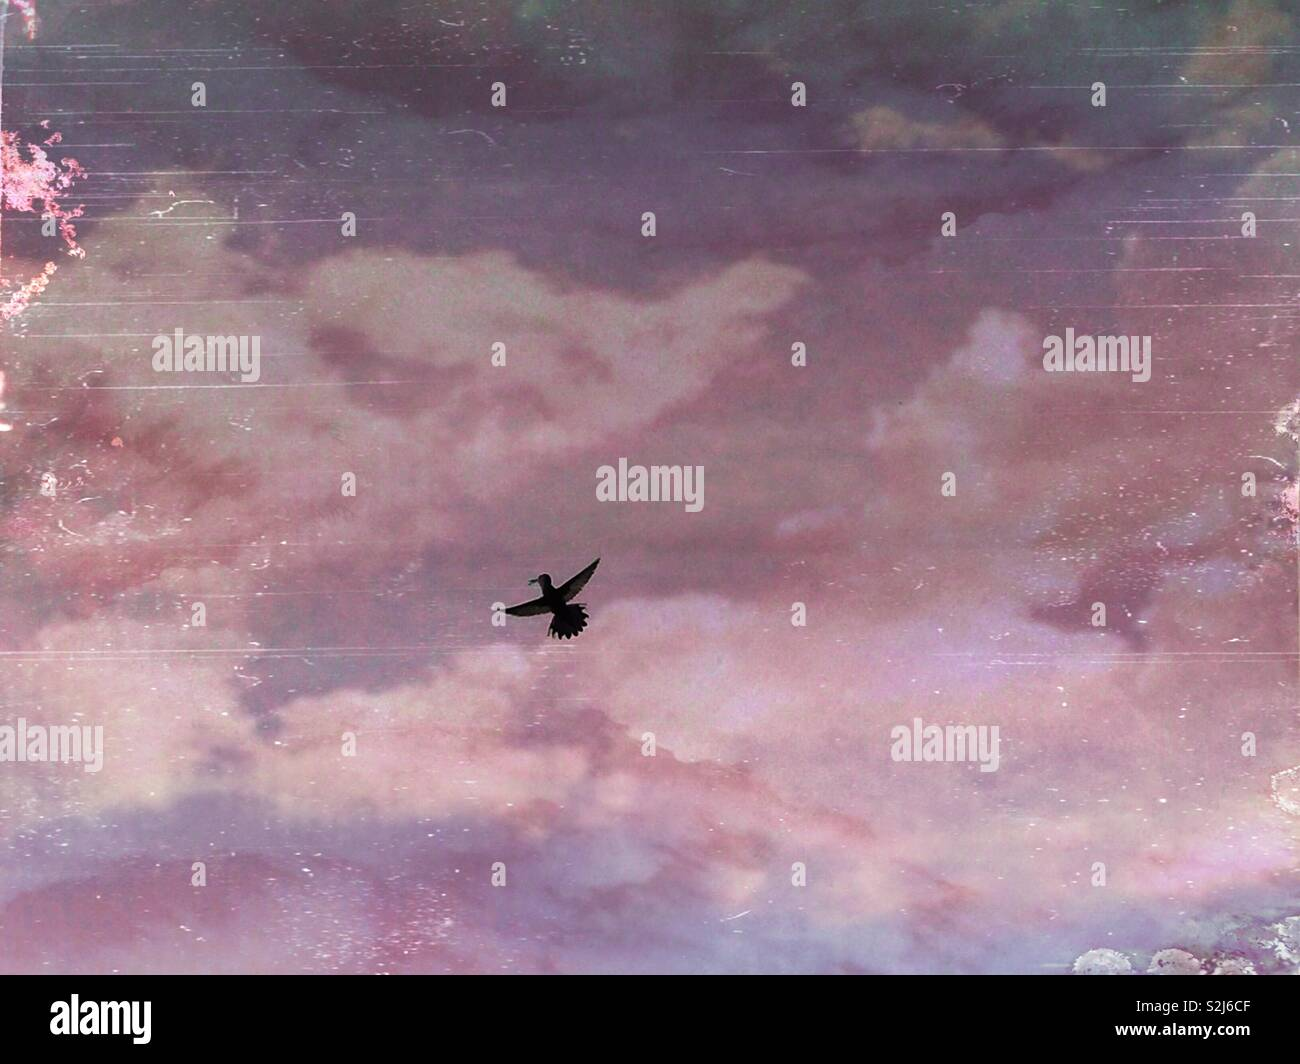 Hummingbird flying in the sky. Artistic sky background. - Stock Image